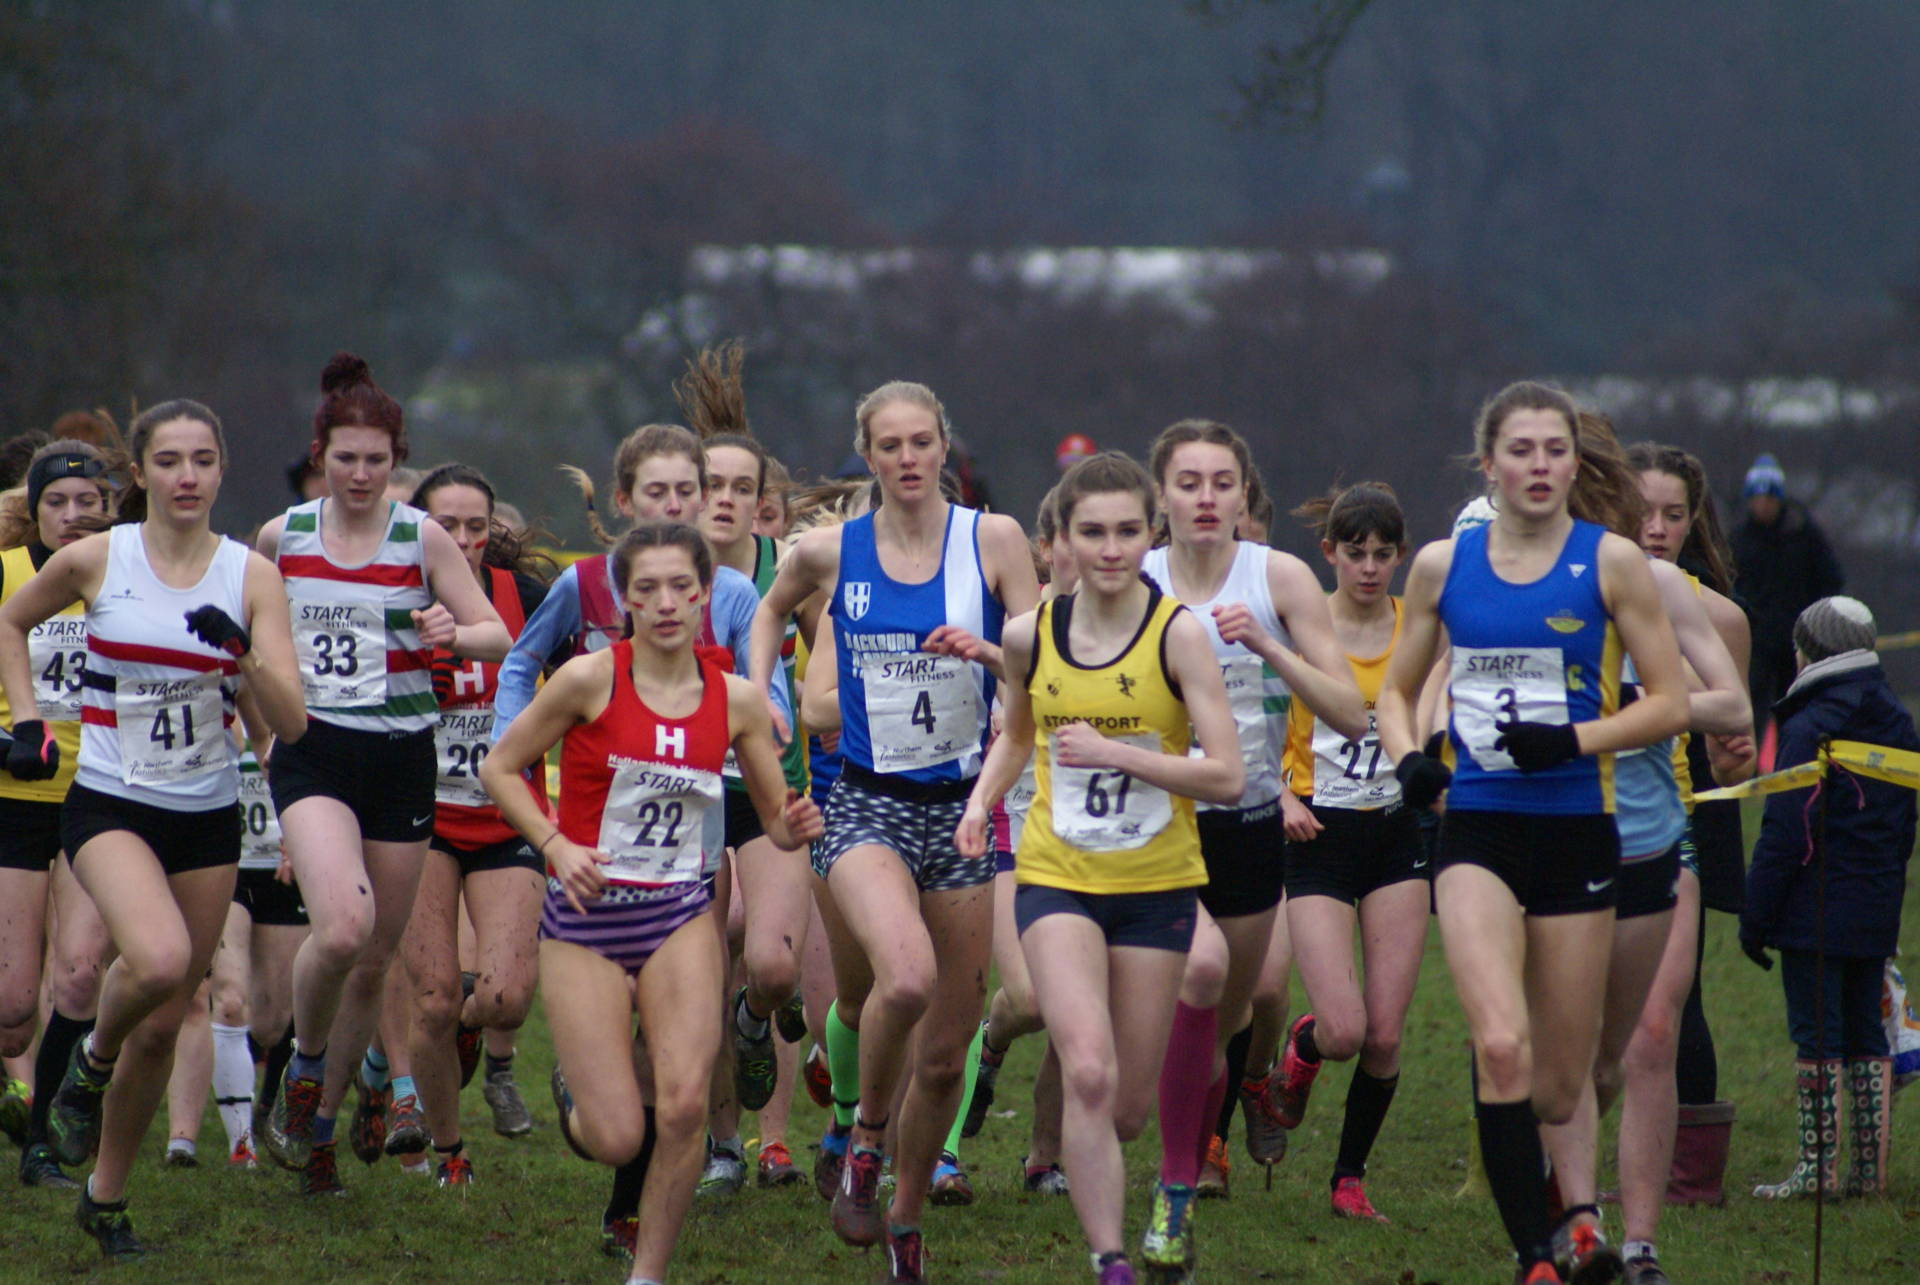 Northern Cross Country Championships & Harriers Youngsters Post Wins and PB's at Sportscity Indoors